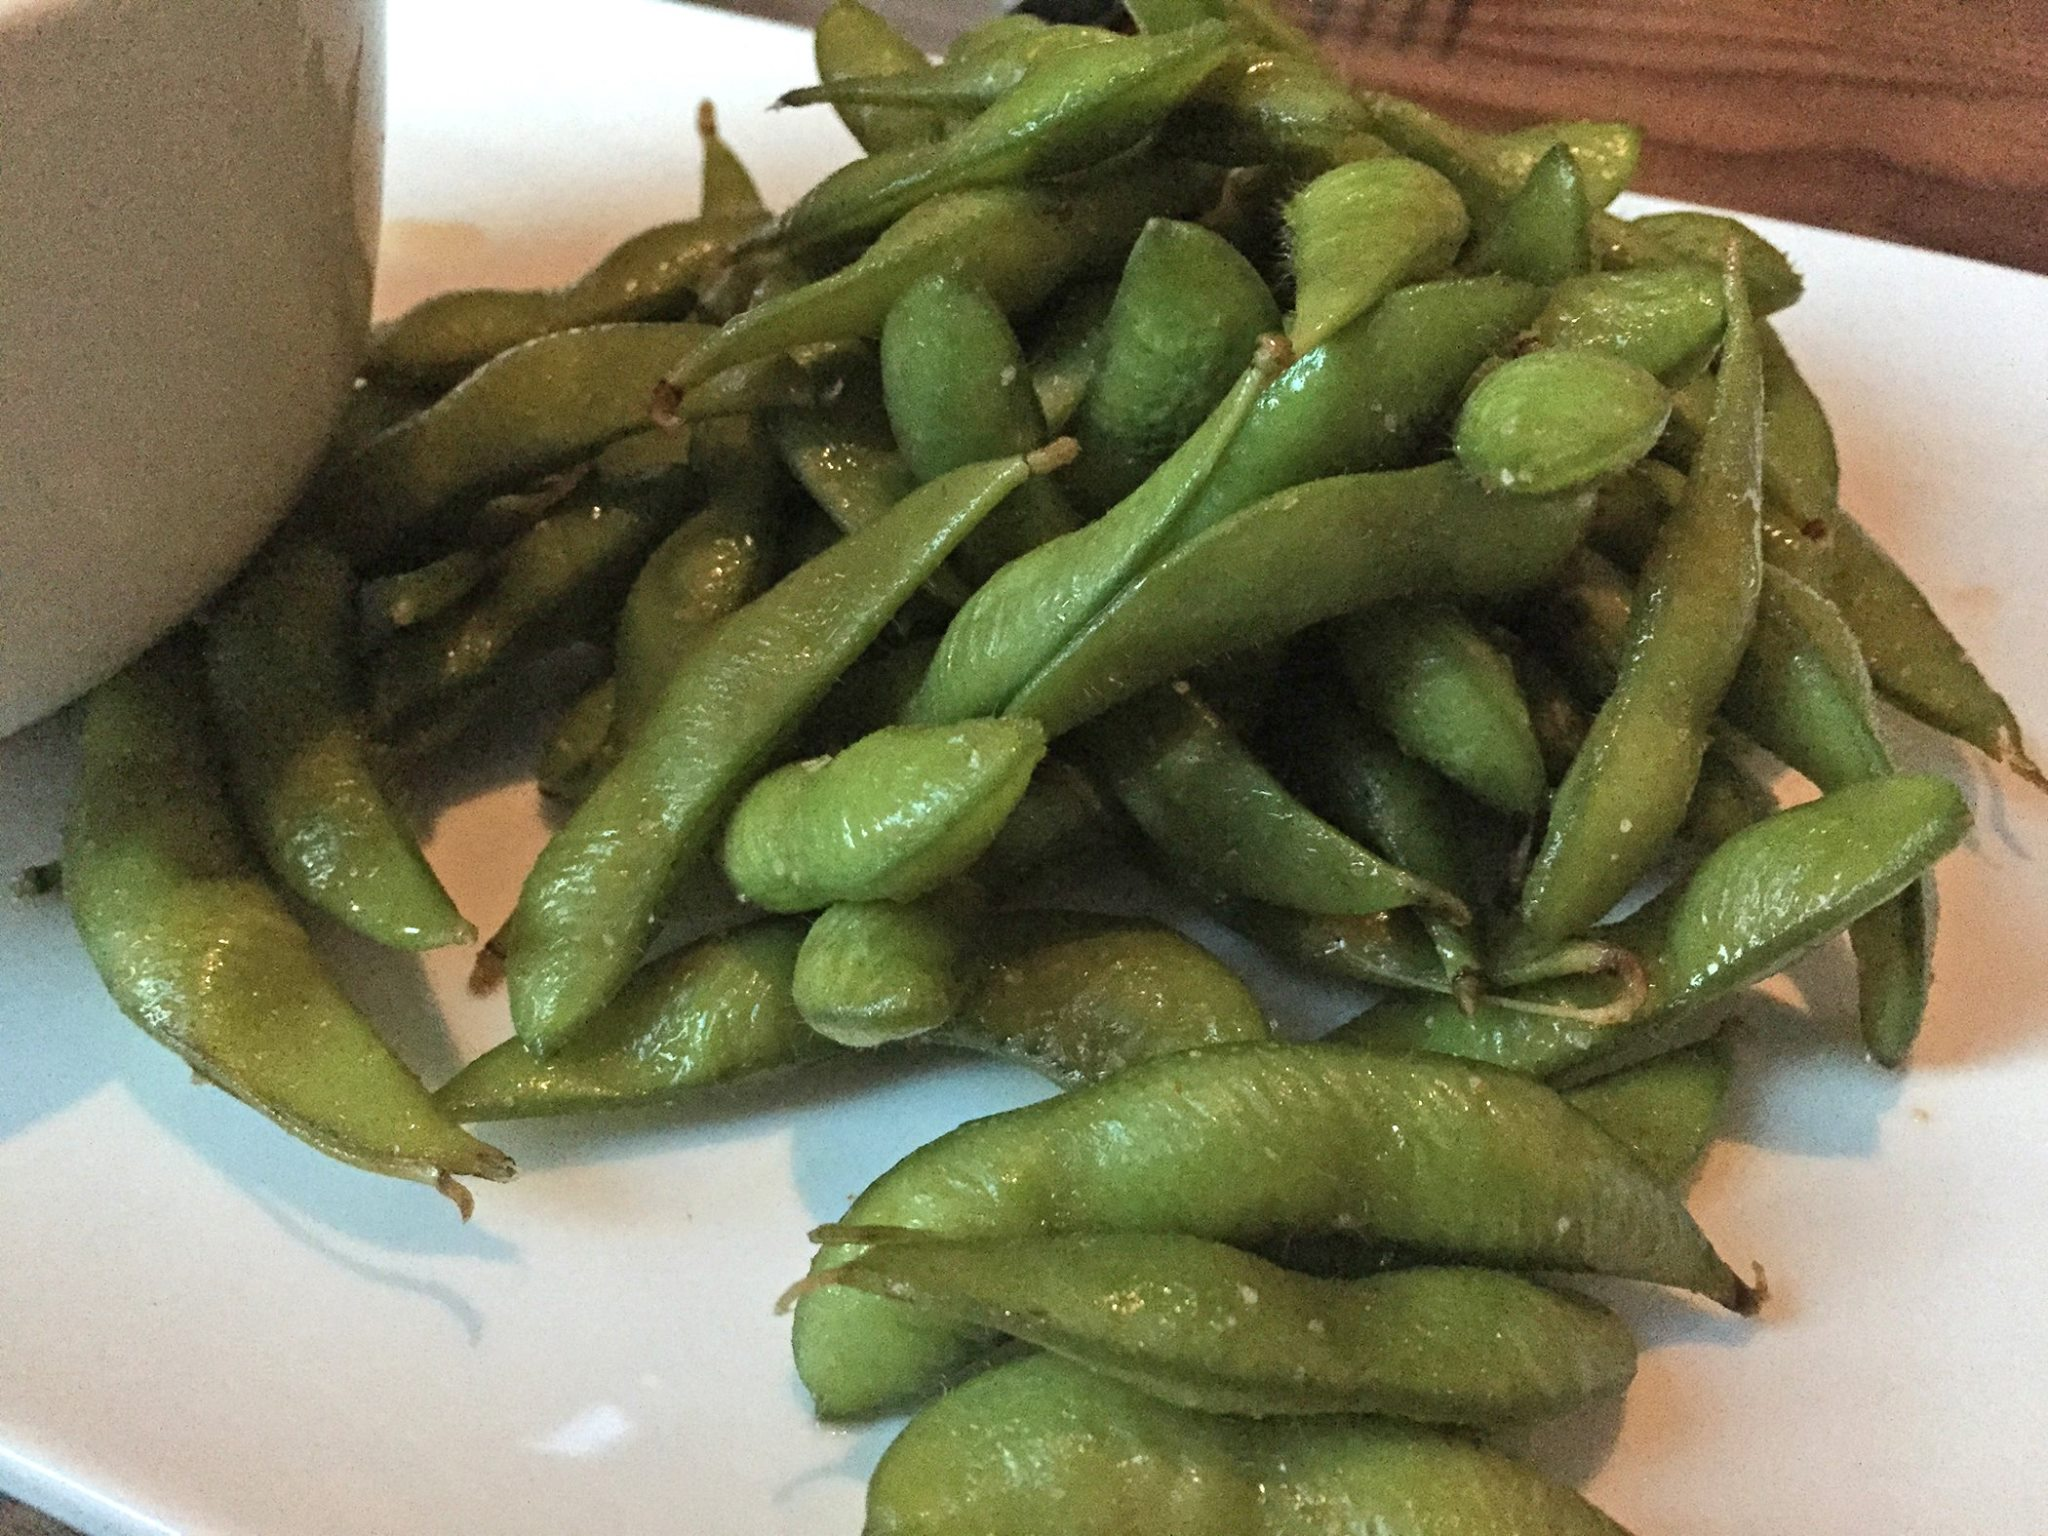 Spicy Edamame infused with Sriracha sea salt